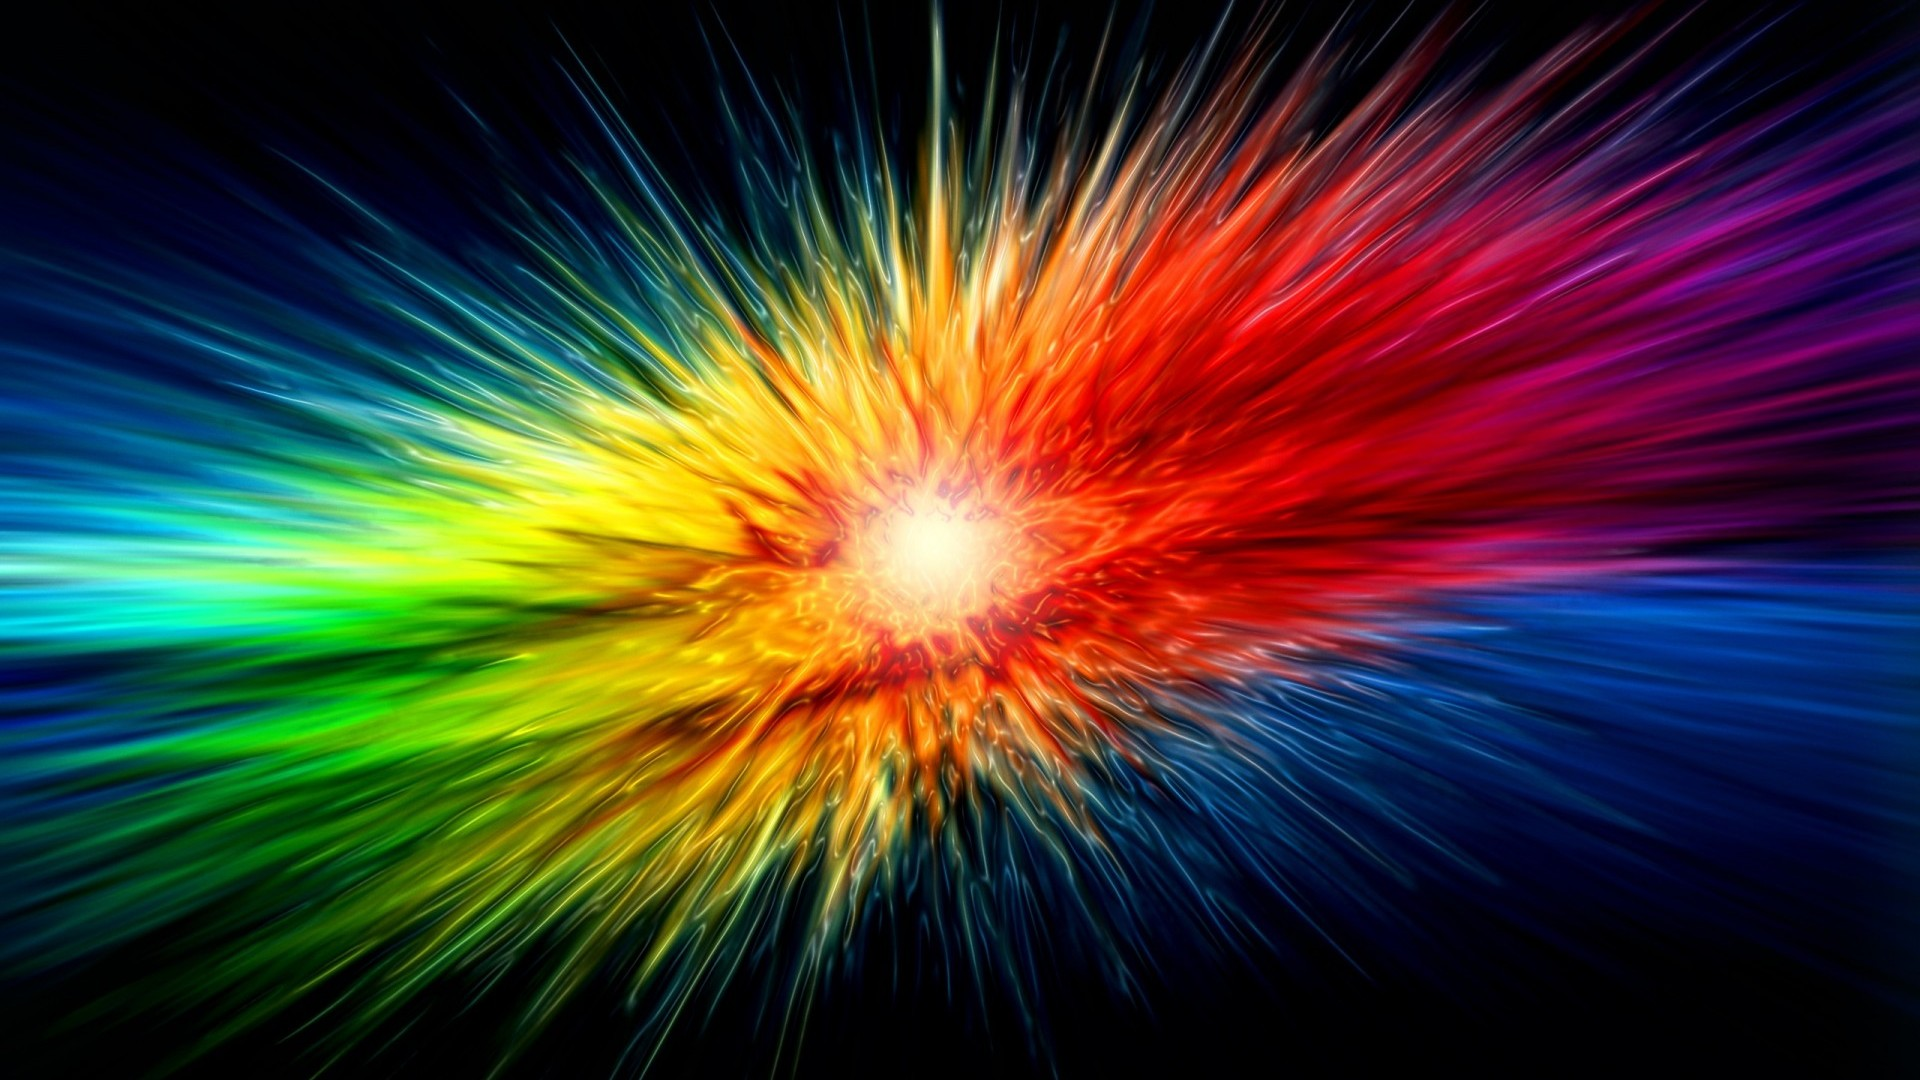 supernova rainbow explosion 1920x1080 hd wallpaper abstract 3d 1920x1080